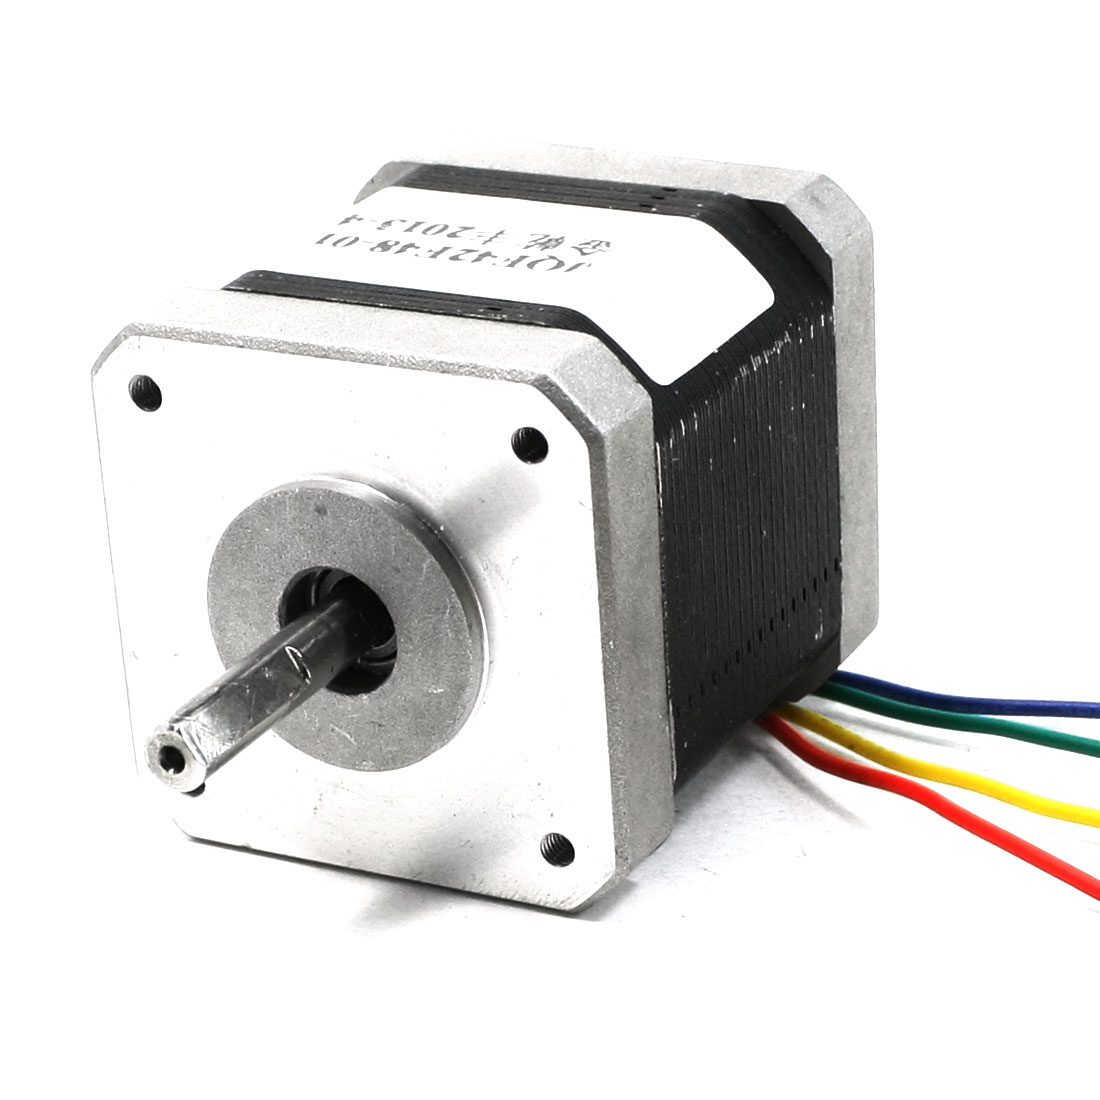 1000RPM Rotary Speed 1.7A 4.5kg.cm Torque 4 Wire Stepper Stepping Motors